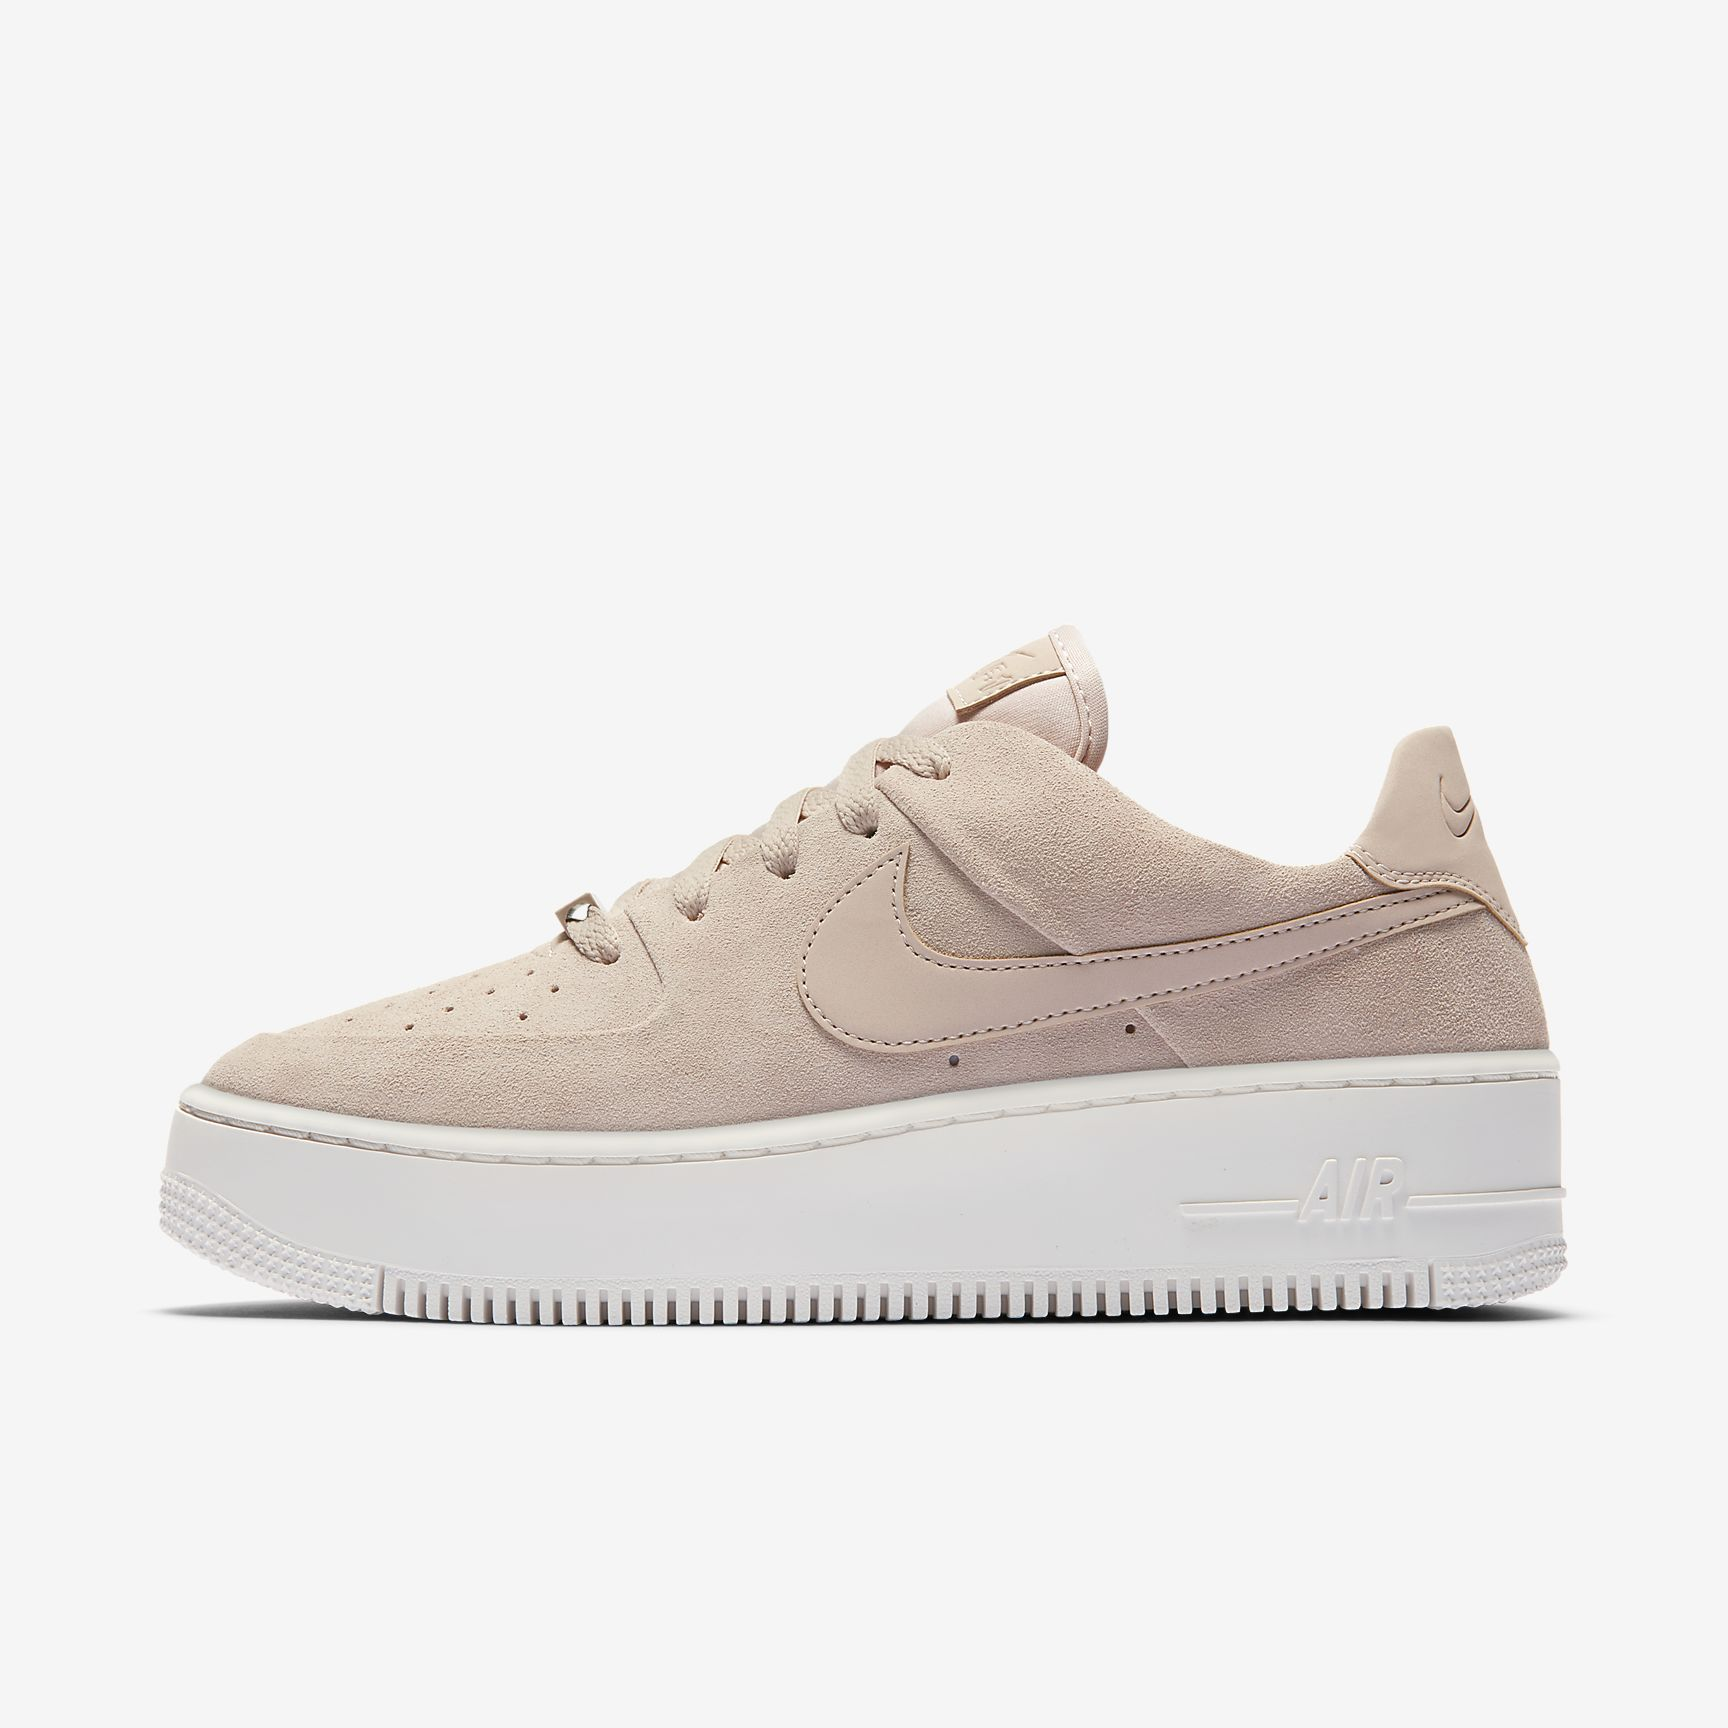 d3491834d9b7 Air Force 1 Sage Low Women s Shoe in 2019